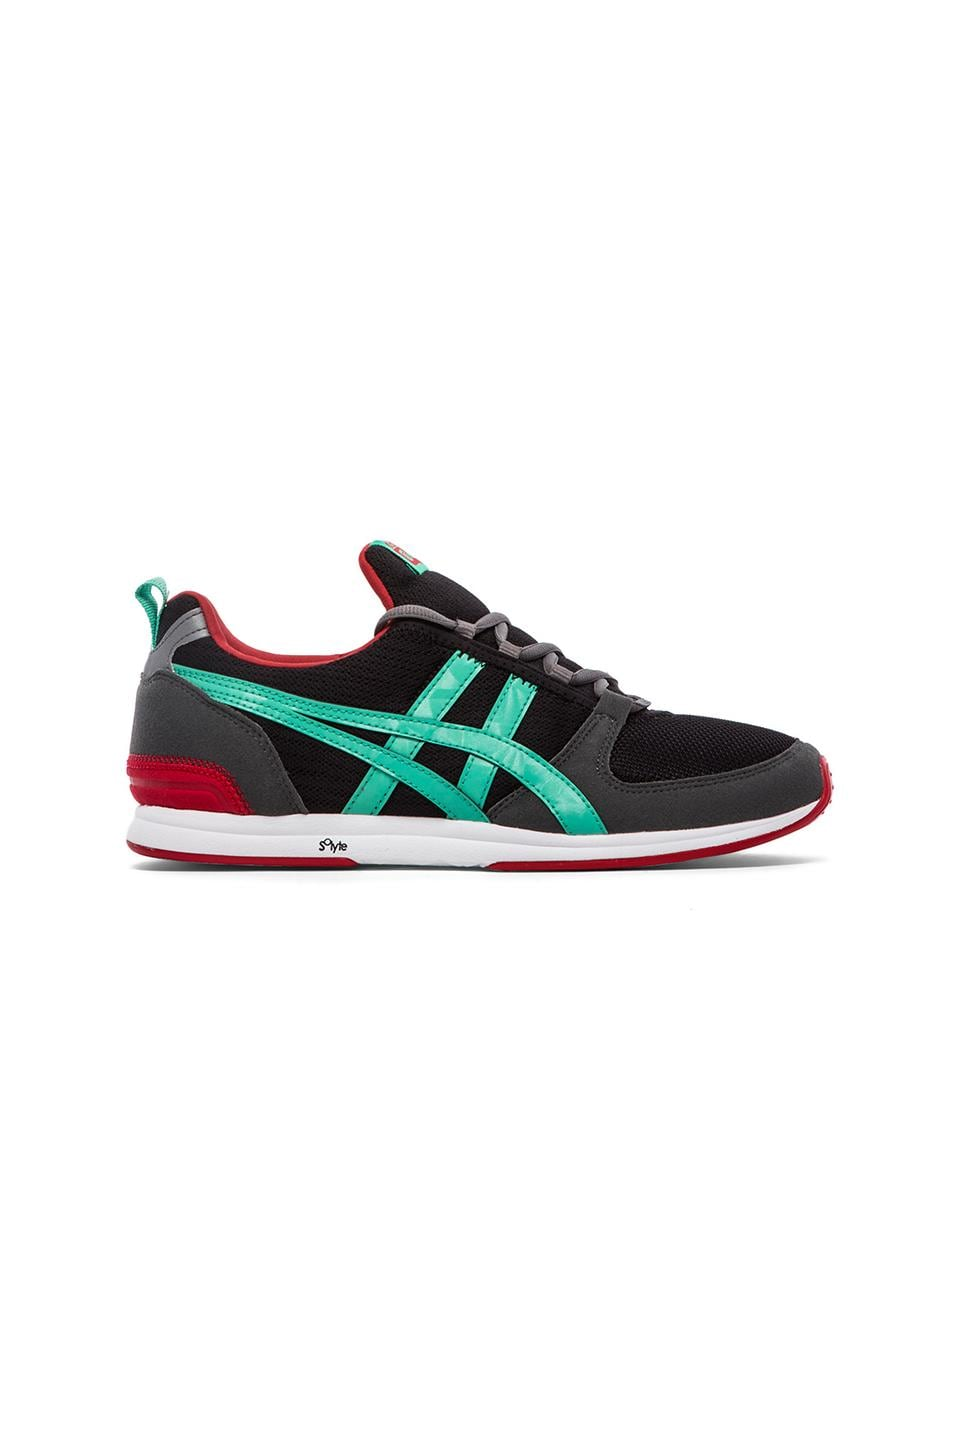 Onitsuka Tiger Ult-Racer in Black & Mint Leaf